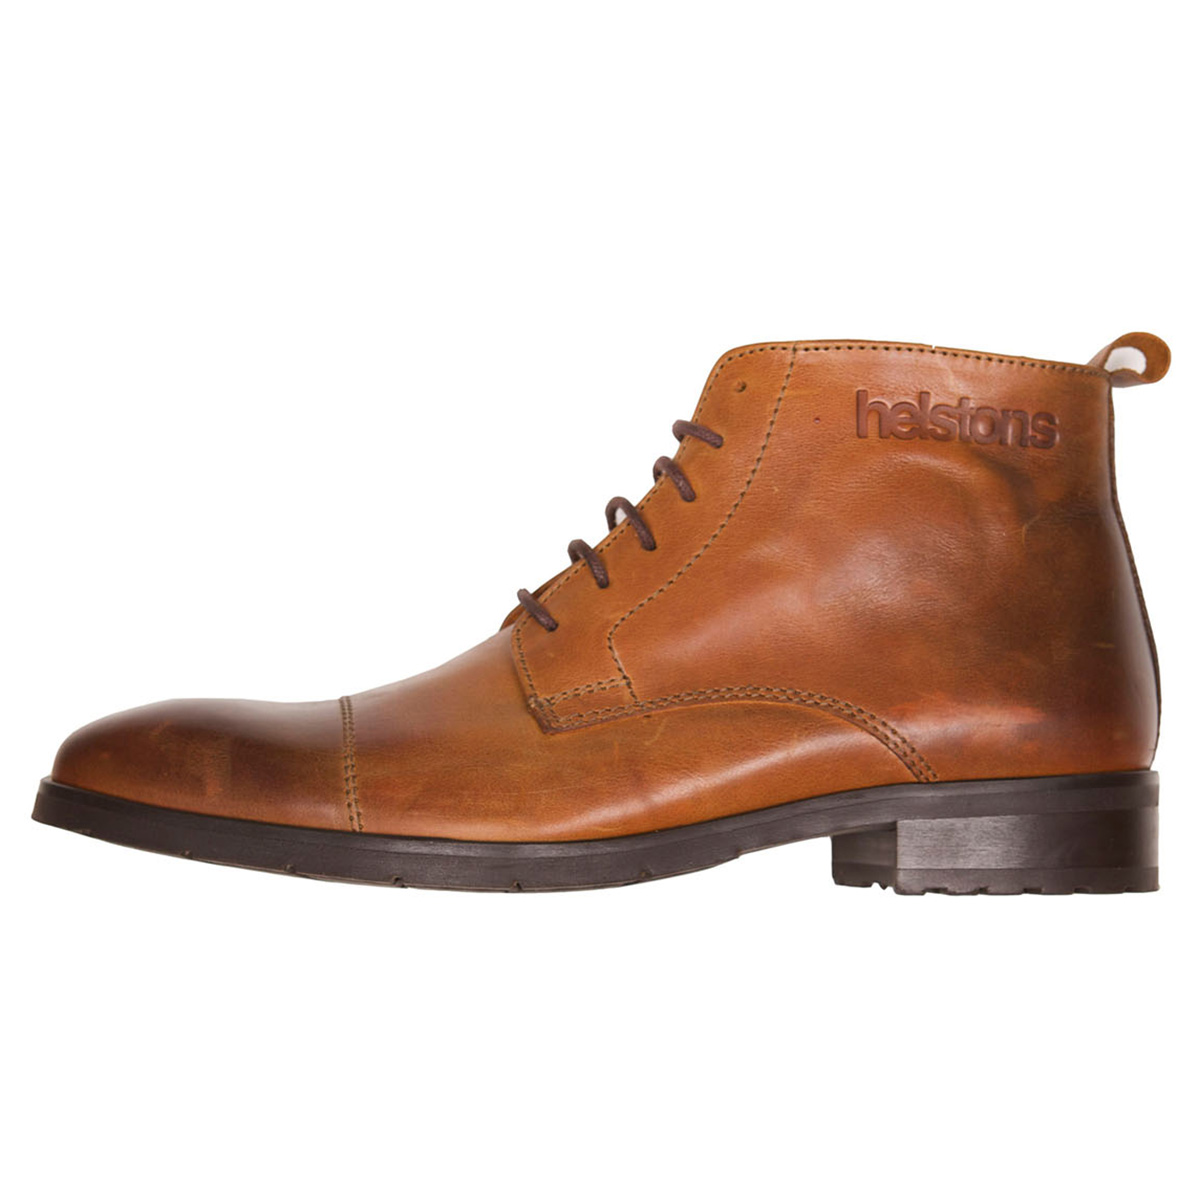 Helstons Heritage Leather Boot Camel